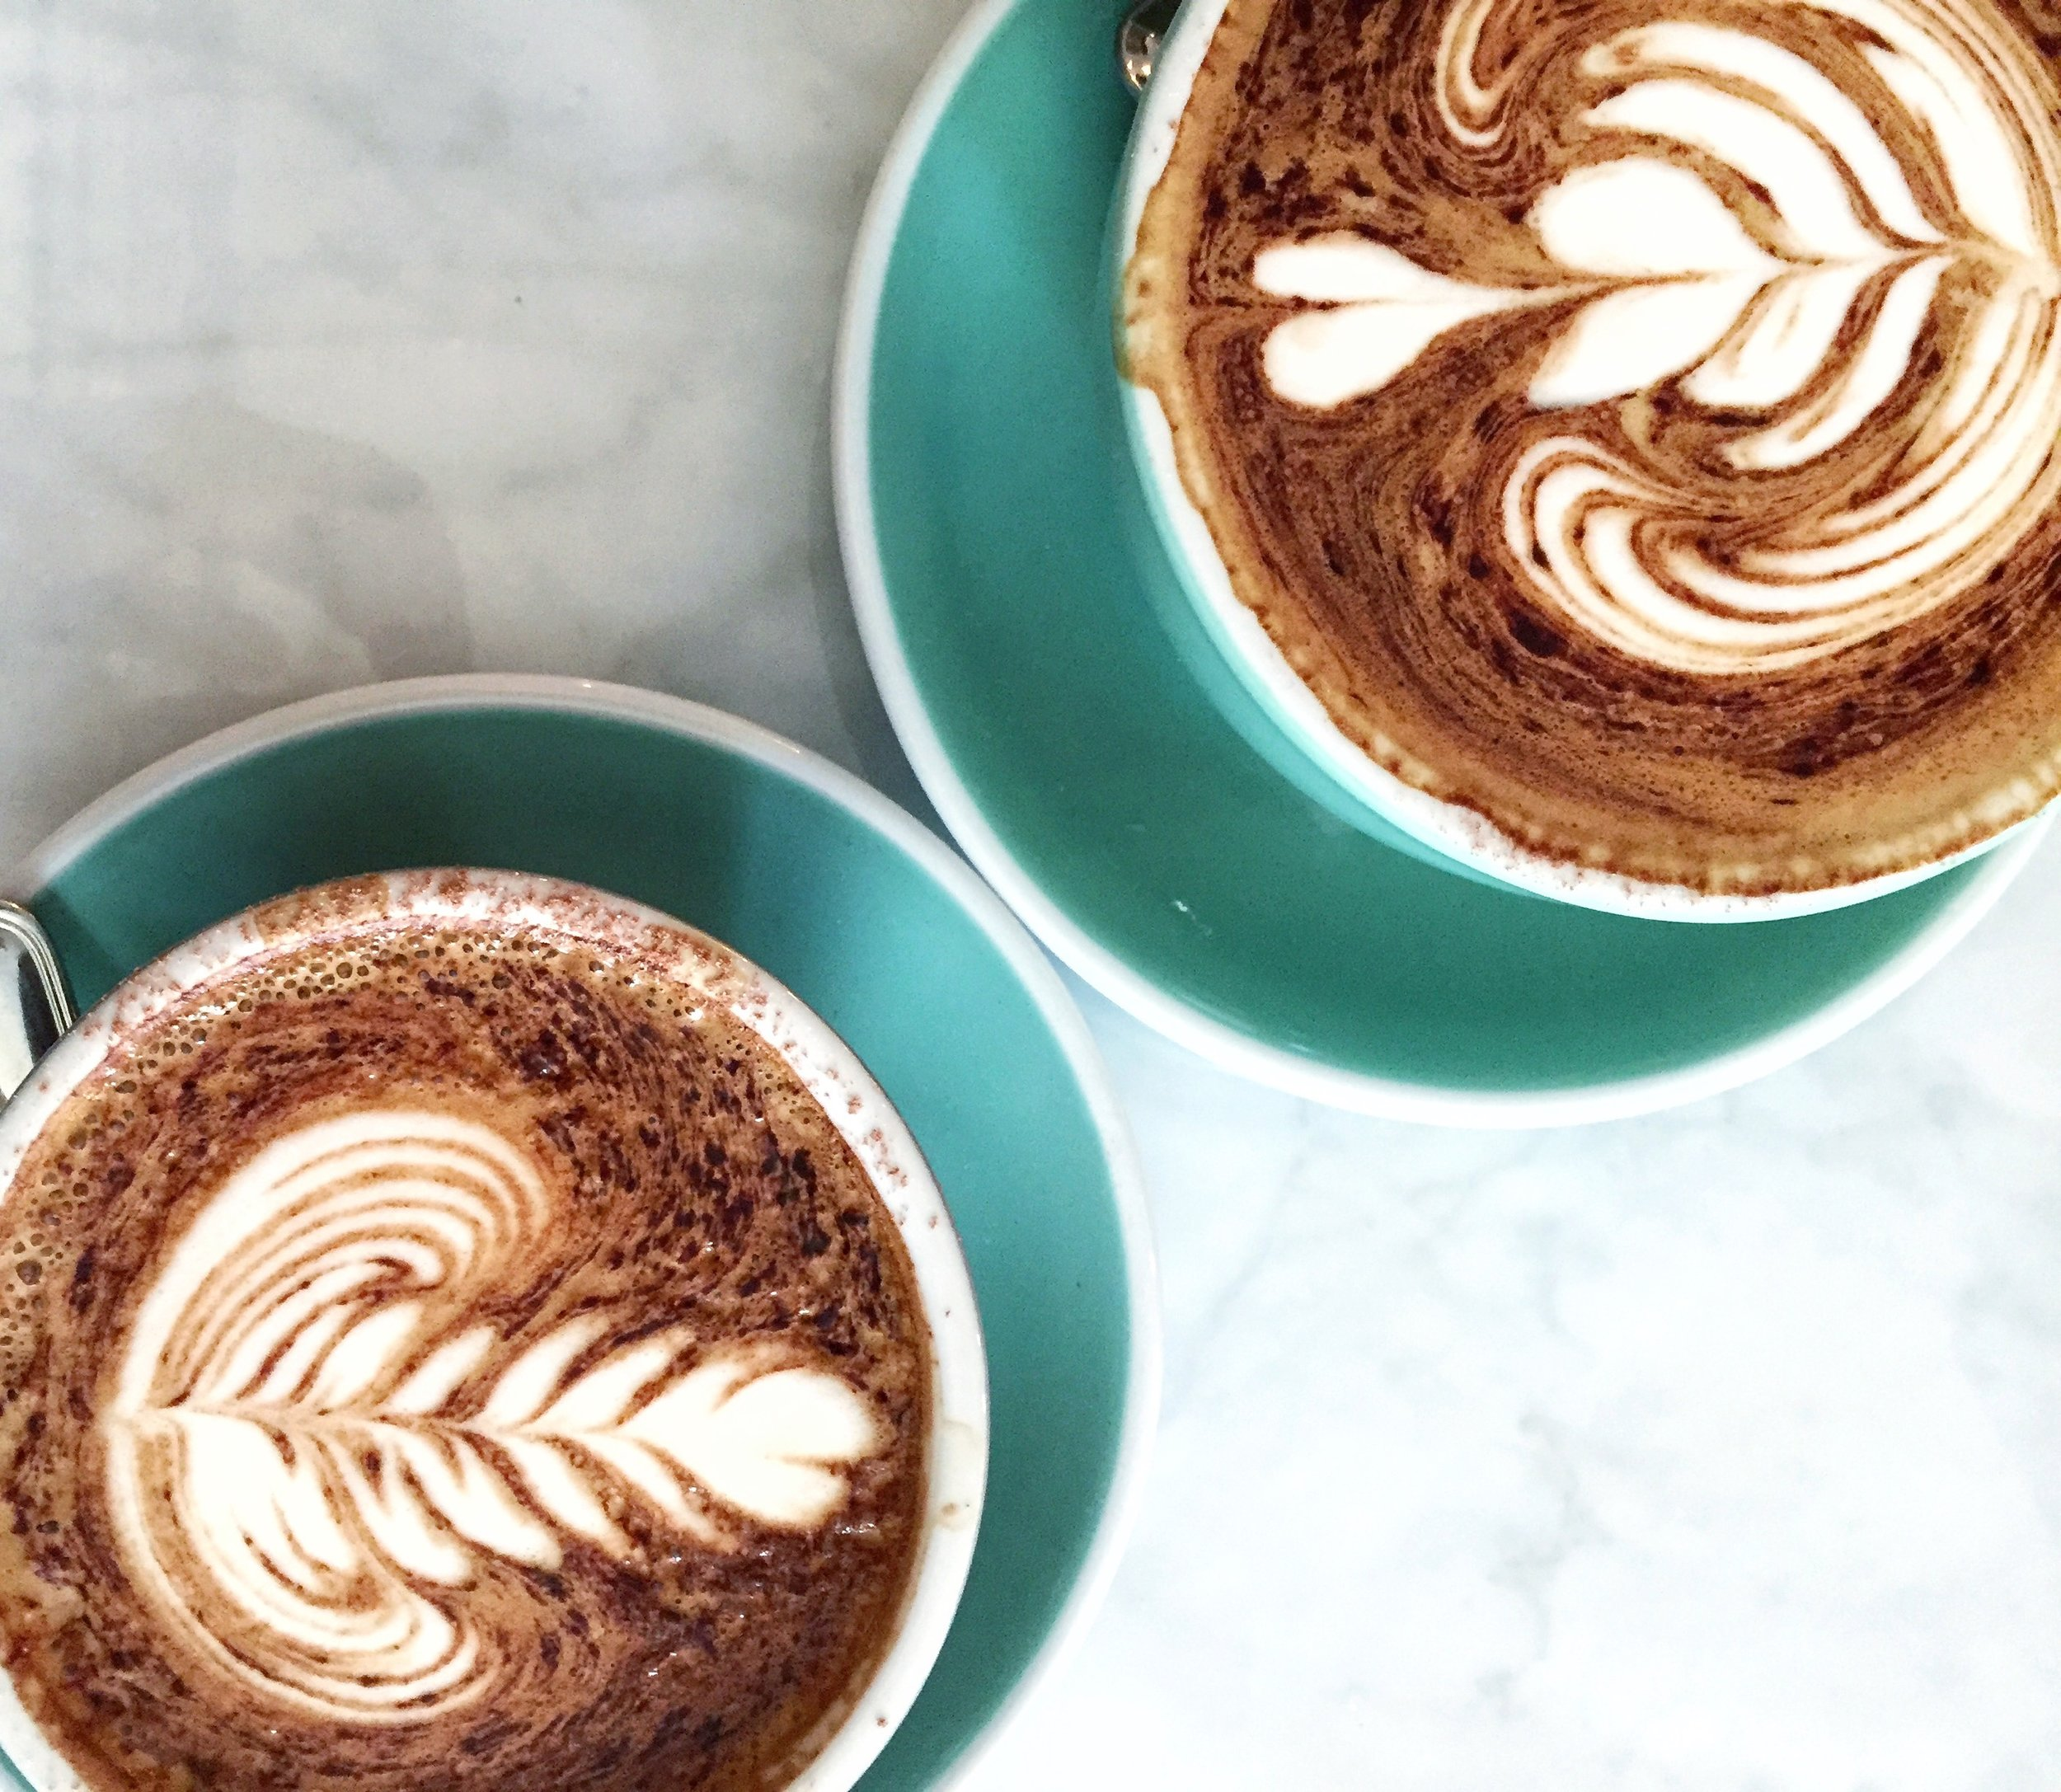 6 Musts when Cold Emailing or Asking for a Coffee Meeting